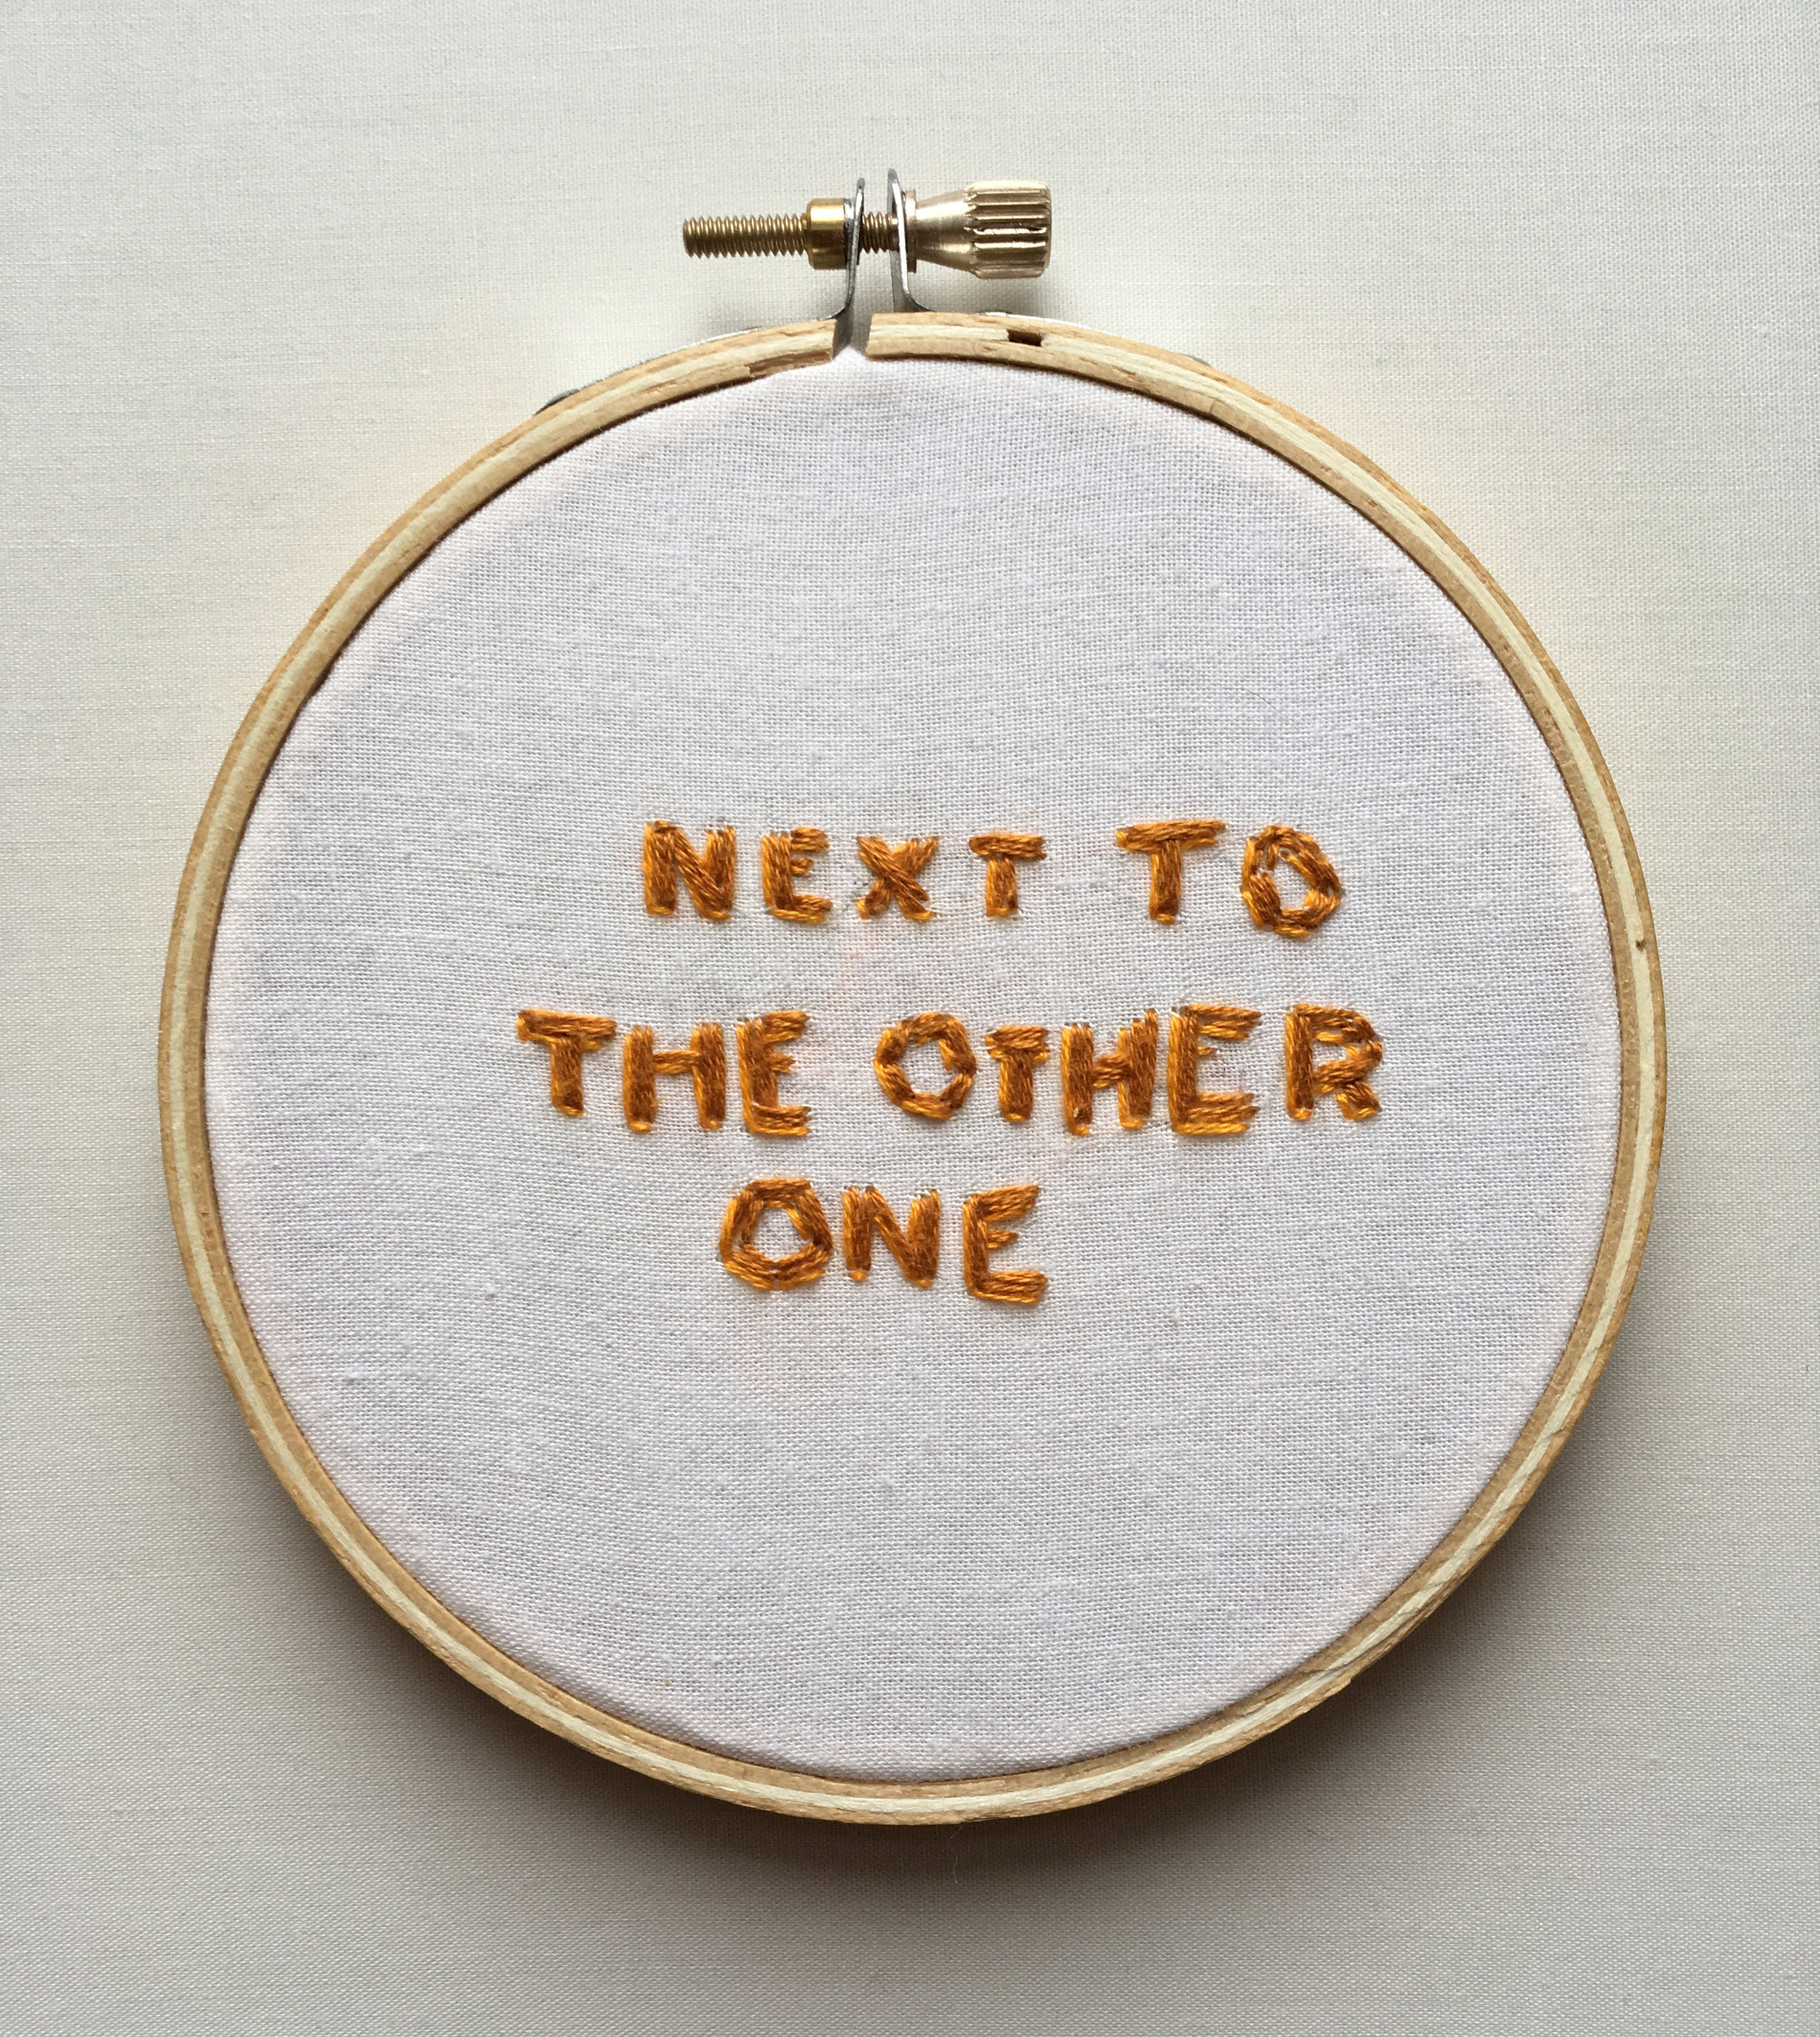 """Next to The Other One  2017 4"""" embroidery"""